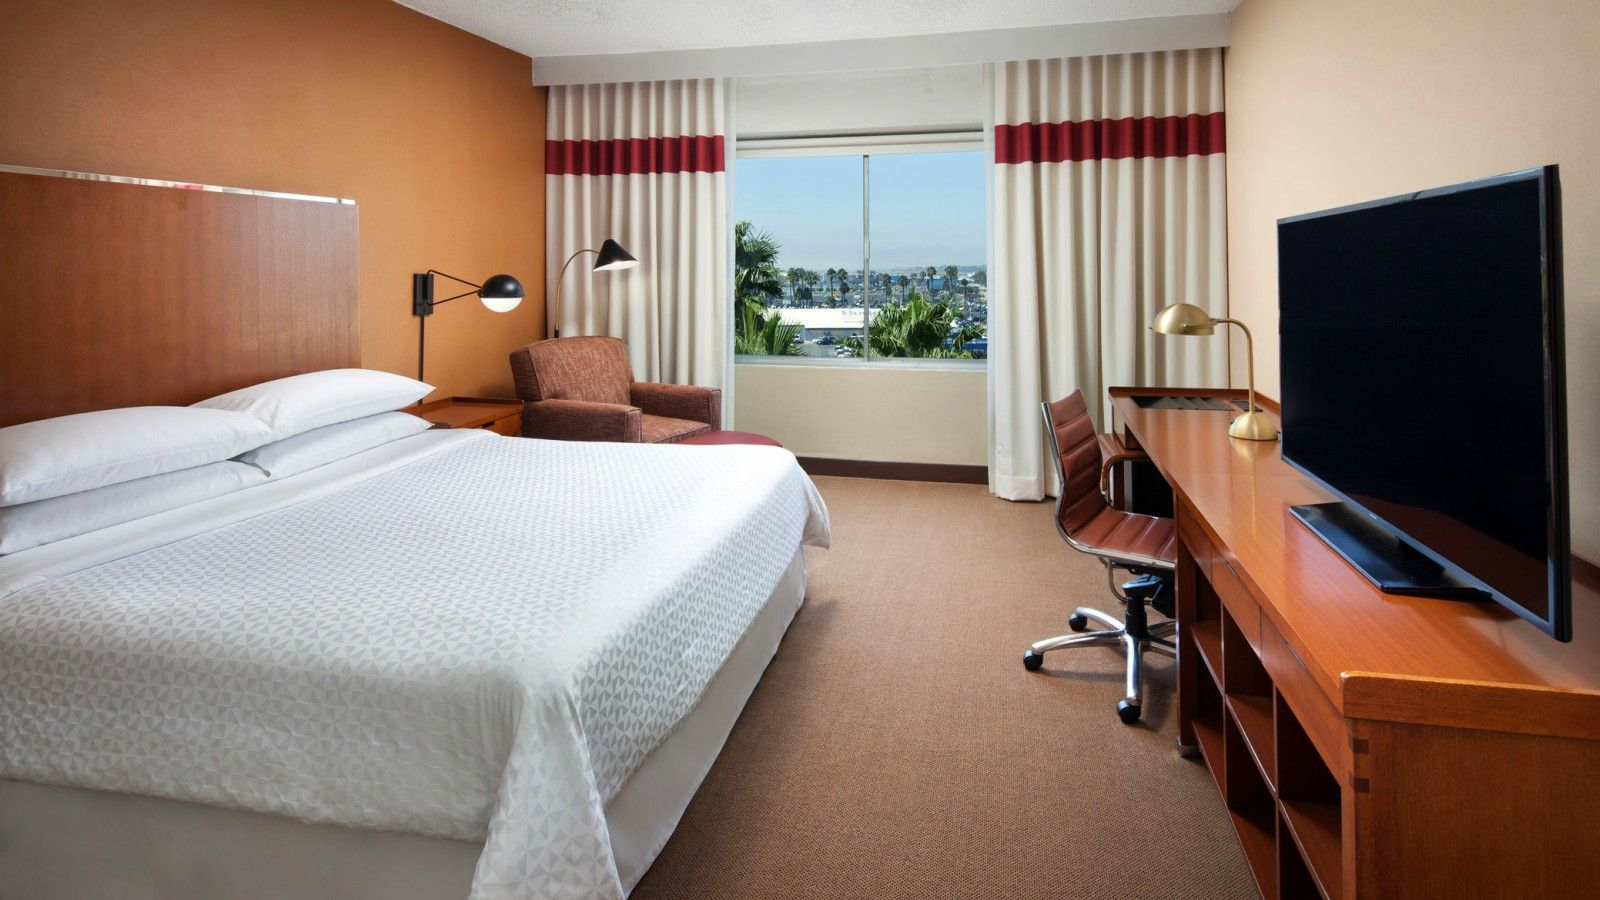 LAX Accommodations - Deluxe King Room